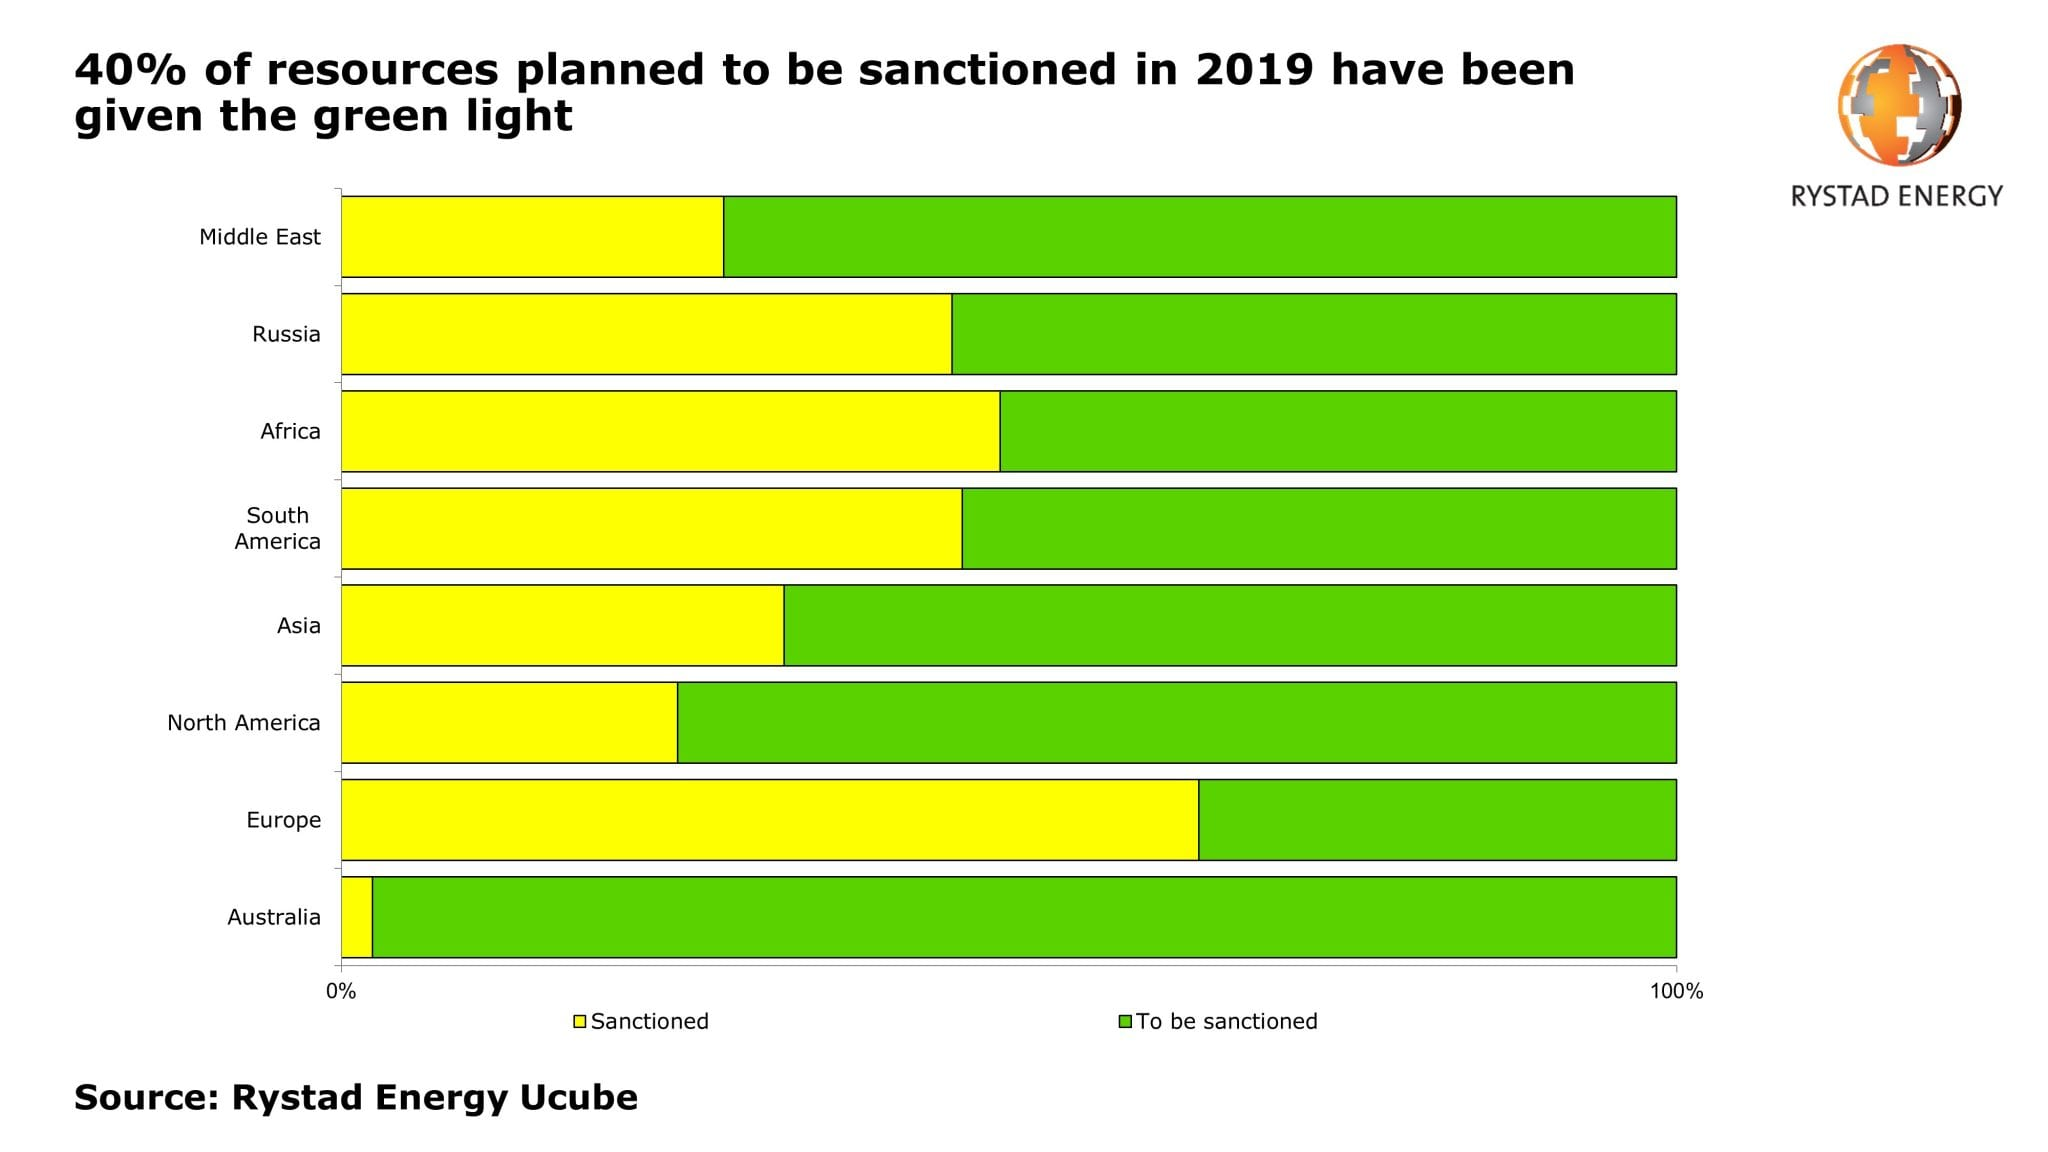 40% of resources to be sanctioned for 2019 gets greenlight